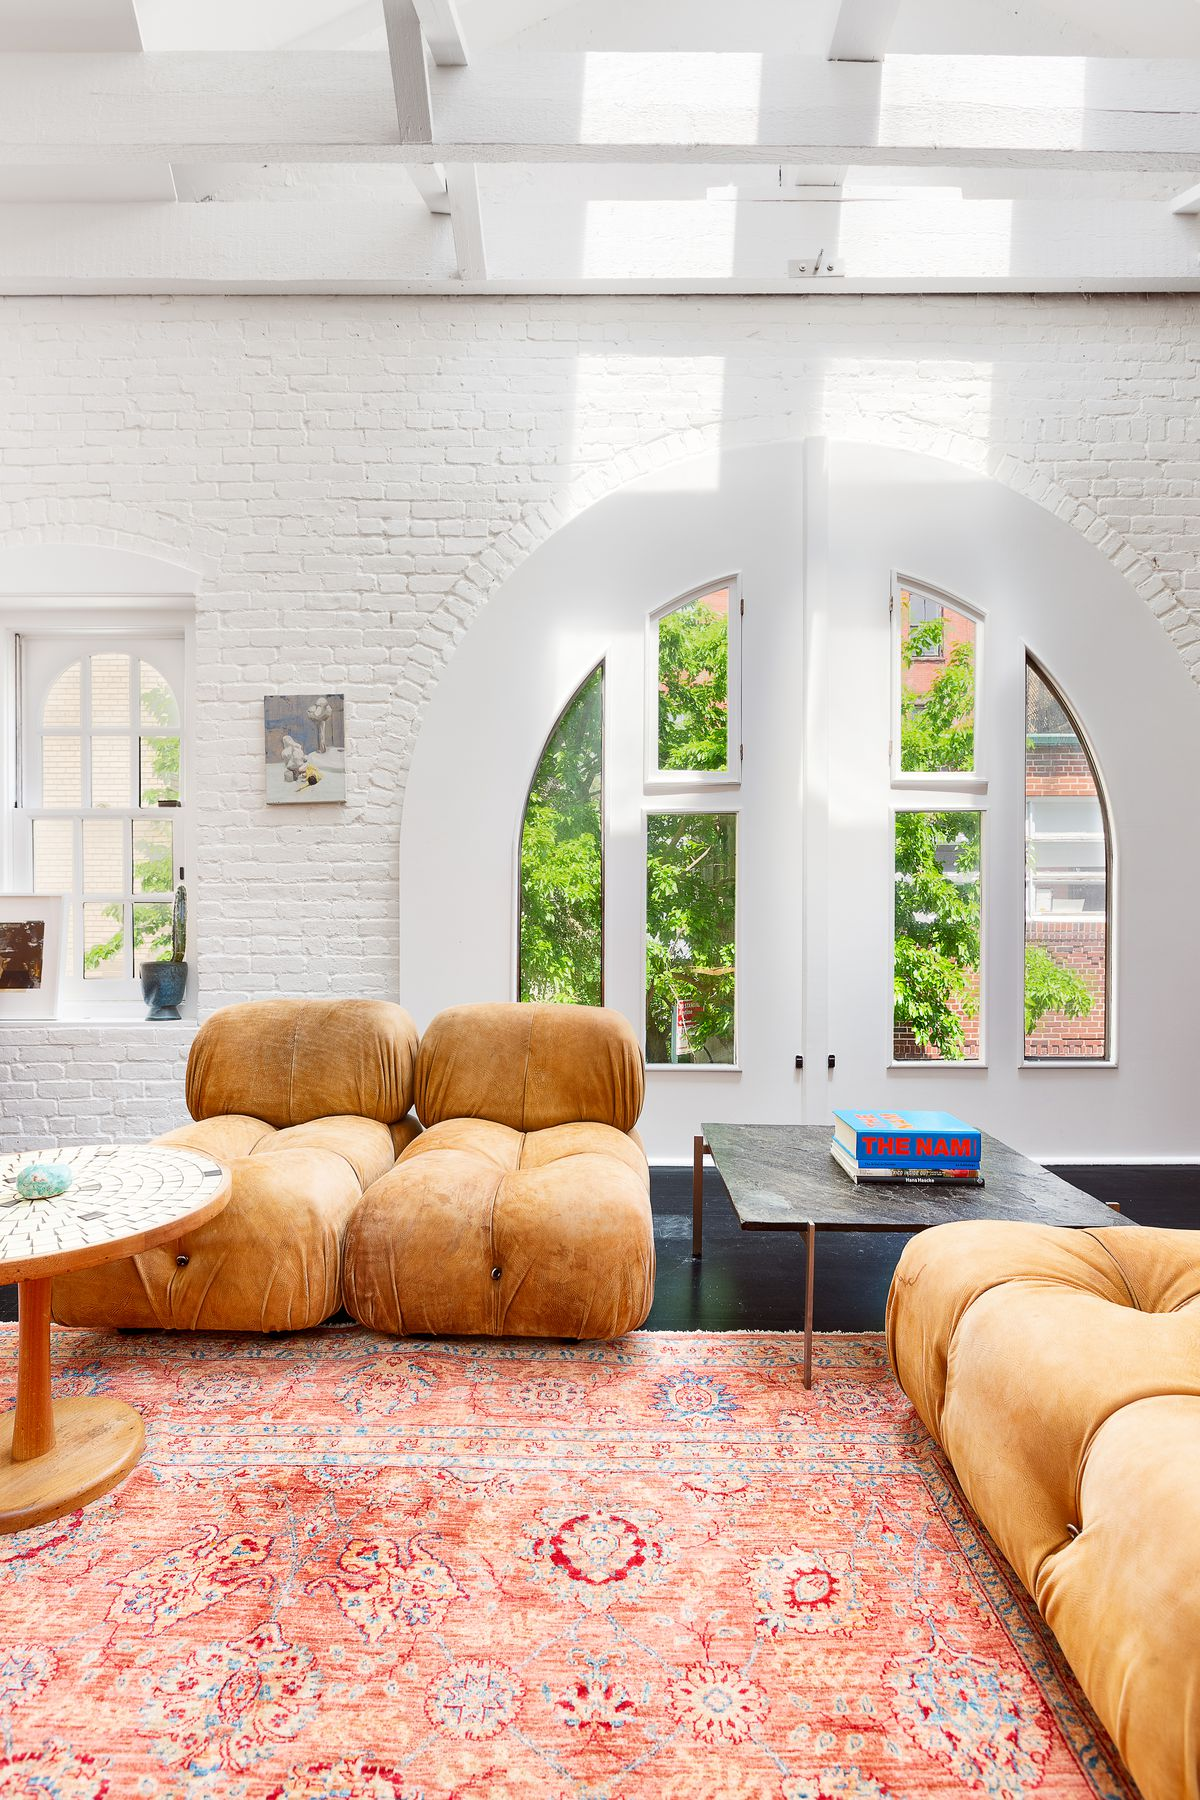 A living area with an arched window, brown couches, and a red rug.